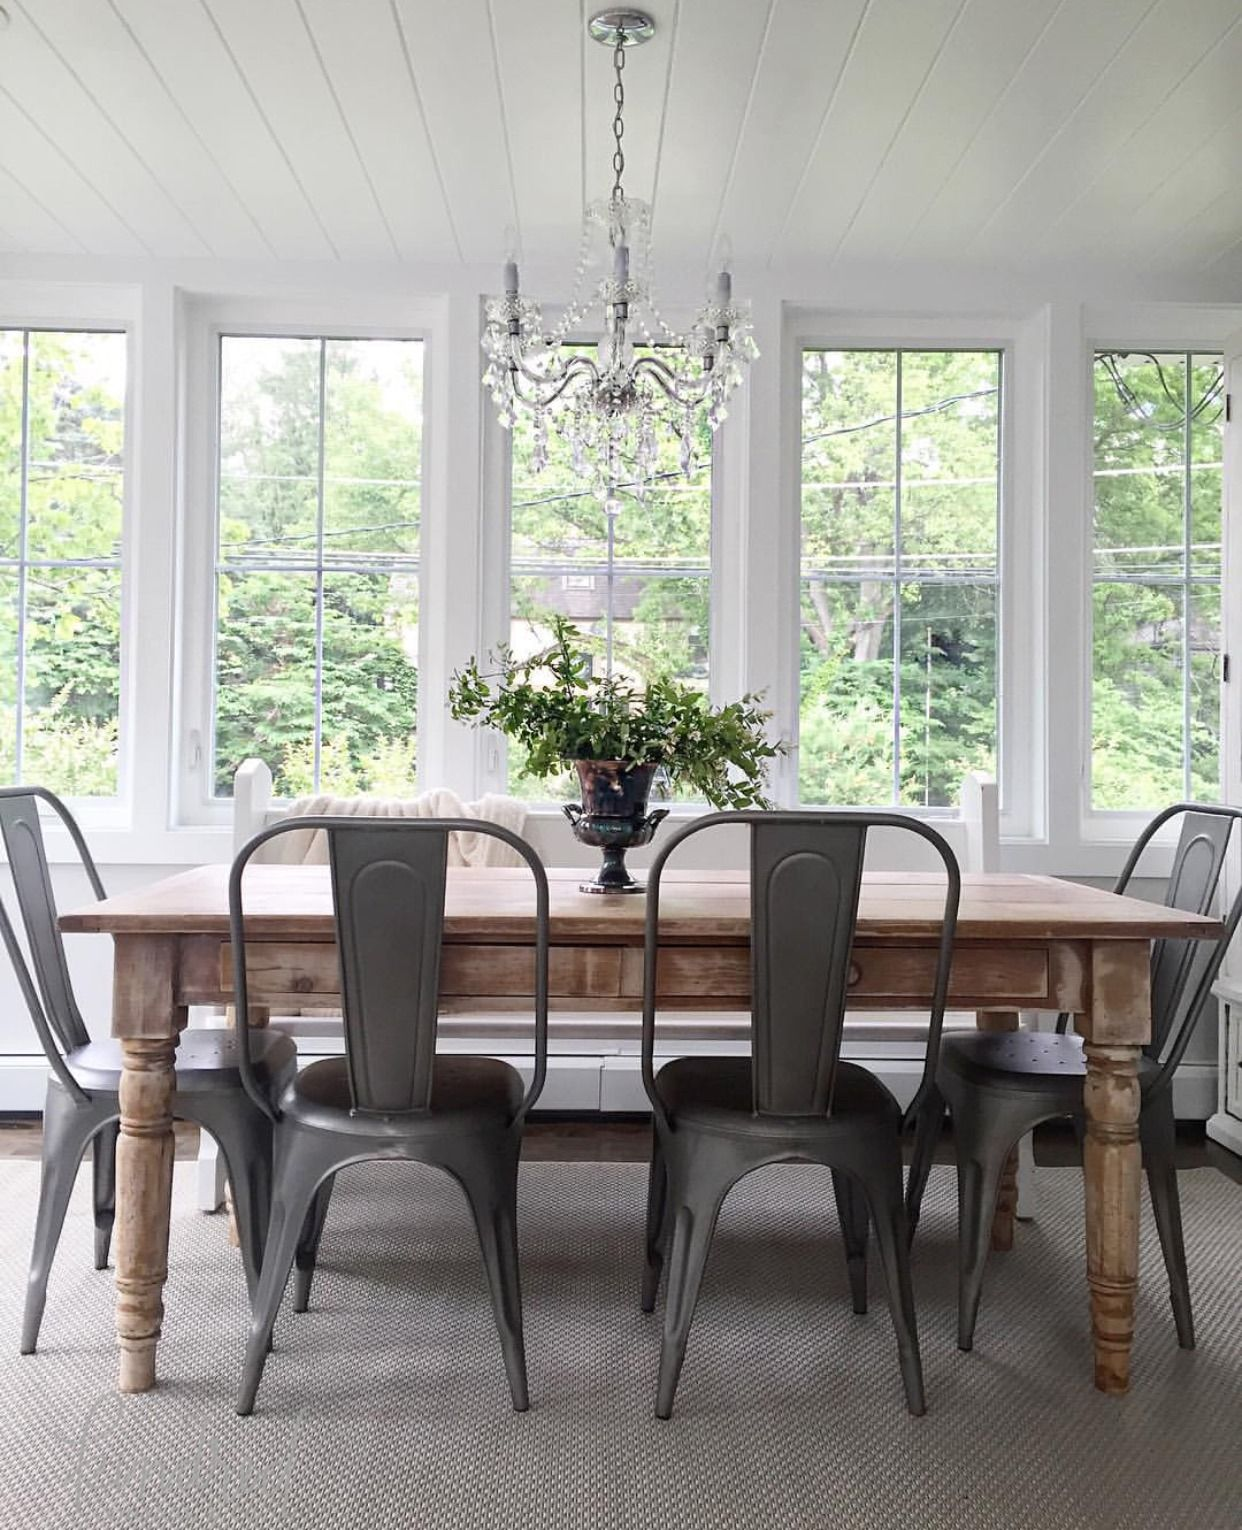 farmers dining table and chairs chaira kindred vintage farmhouse style home design